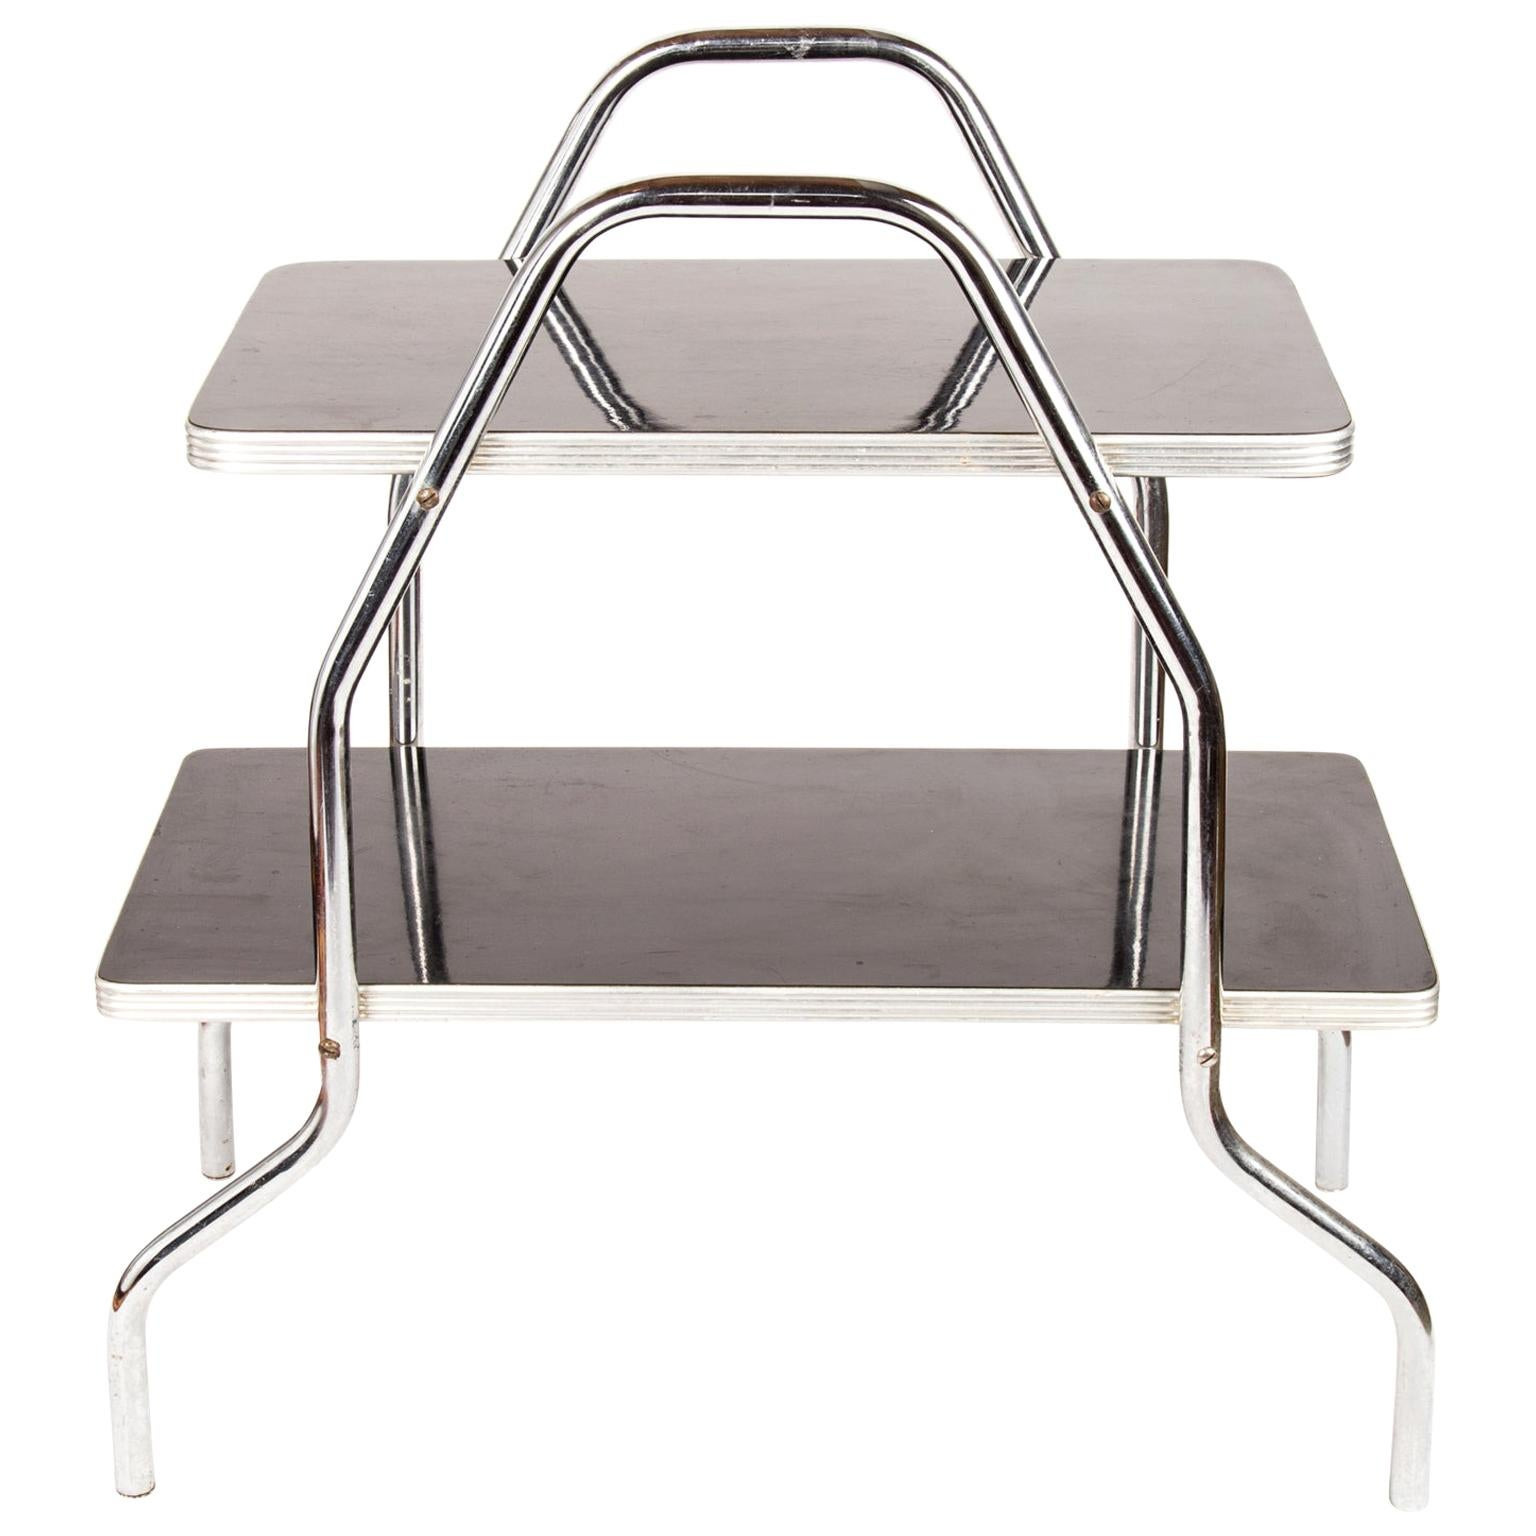 Art Deco Machine Age Streamline Chrome and Black Table after Wolfgang Hoffmann